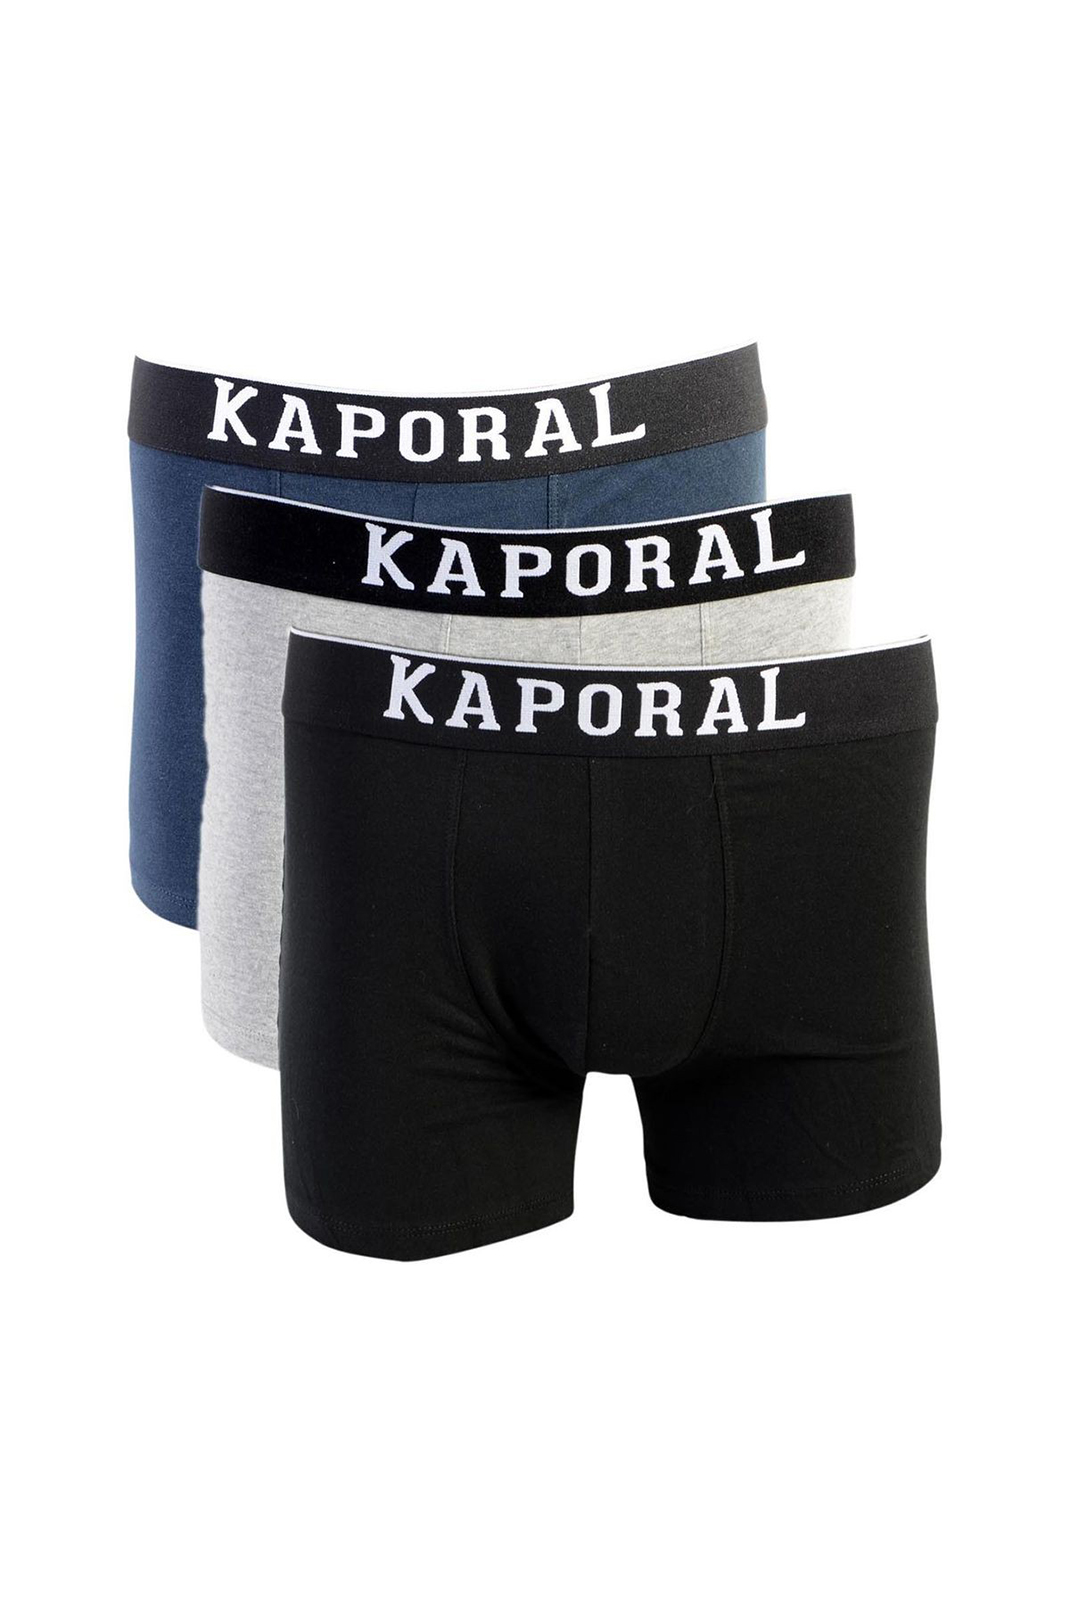 Slips-Caleçons  Kaporal QUAD BLACK/GREY/NAVY